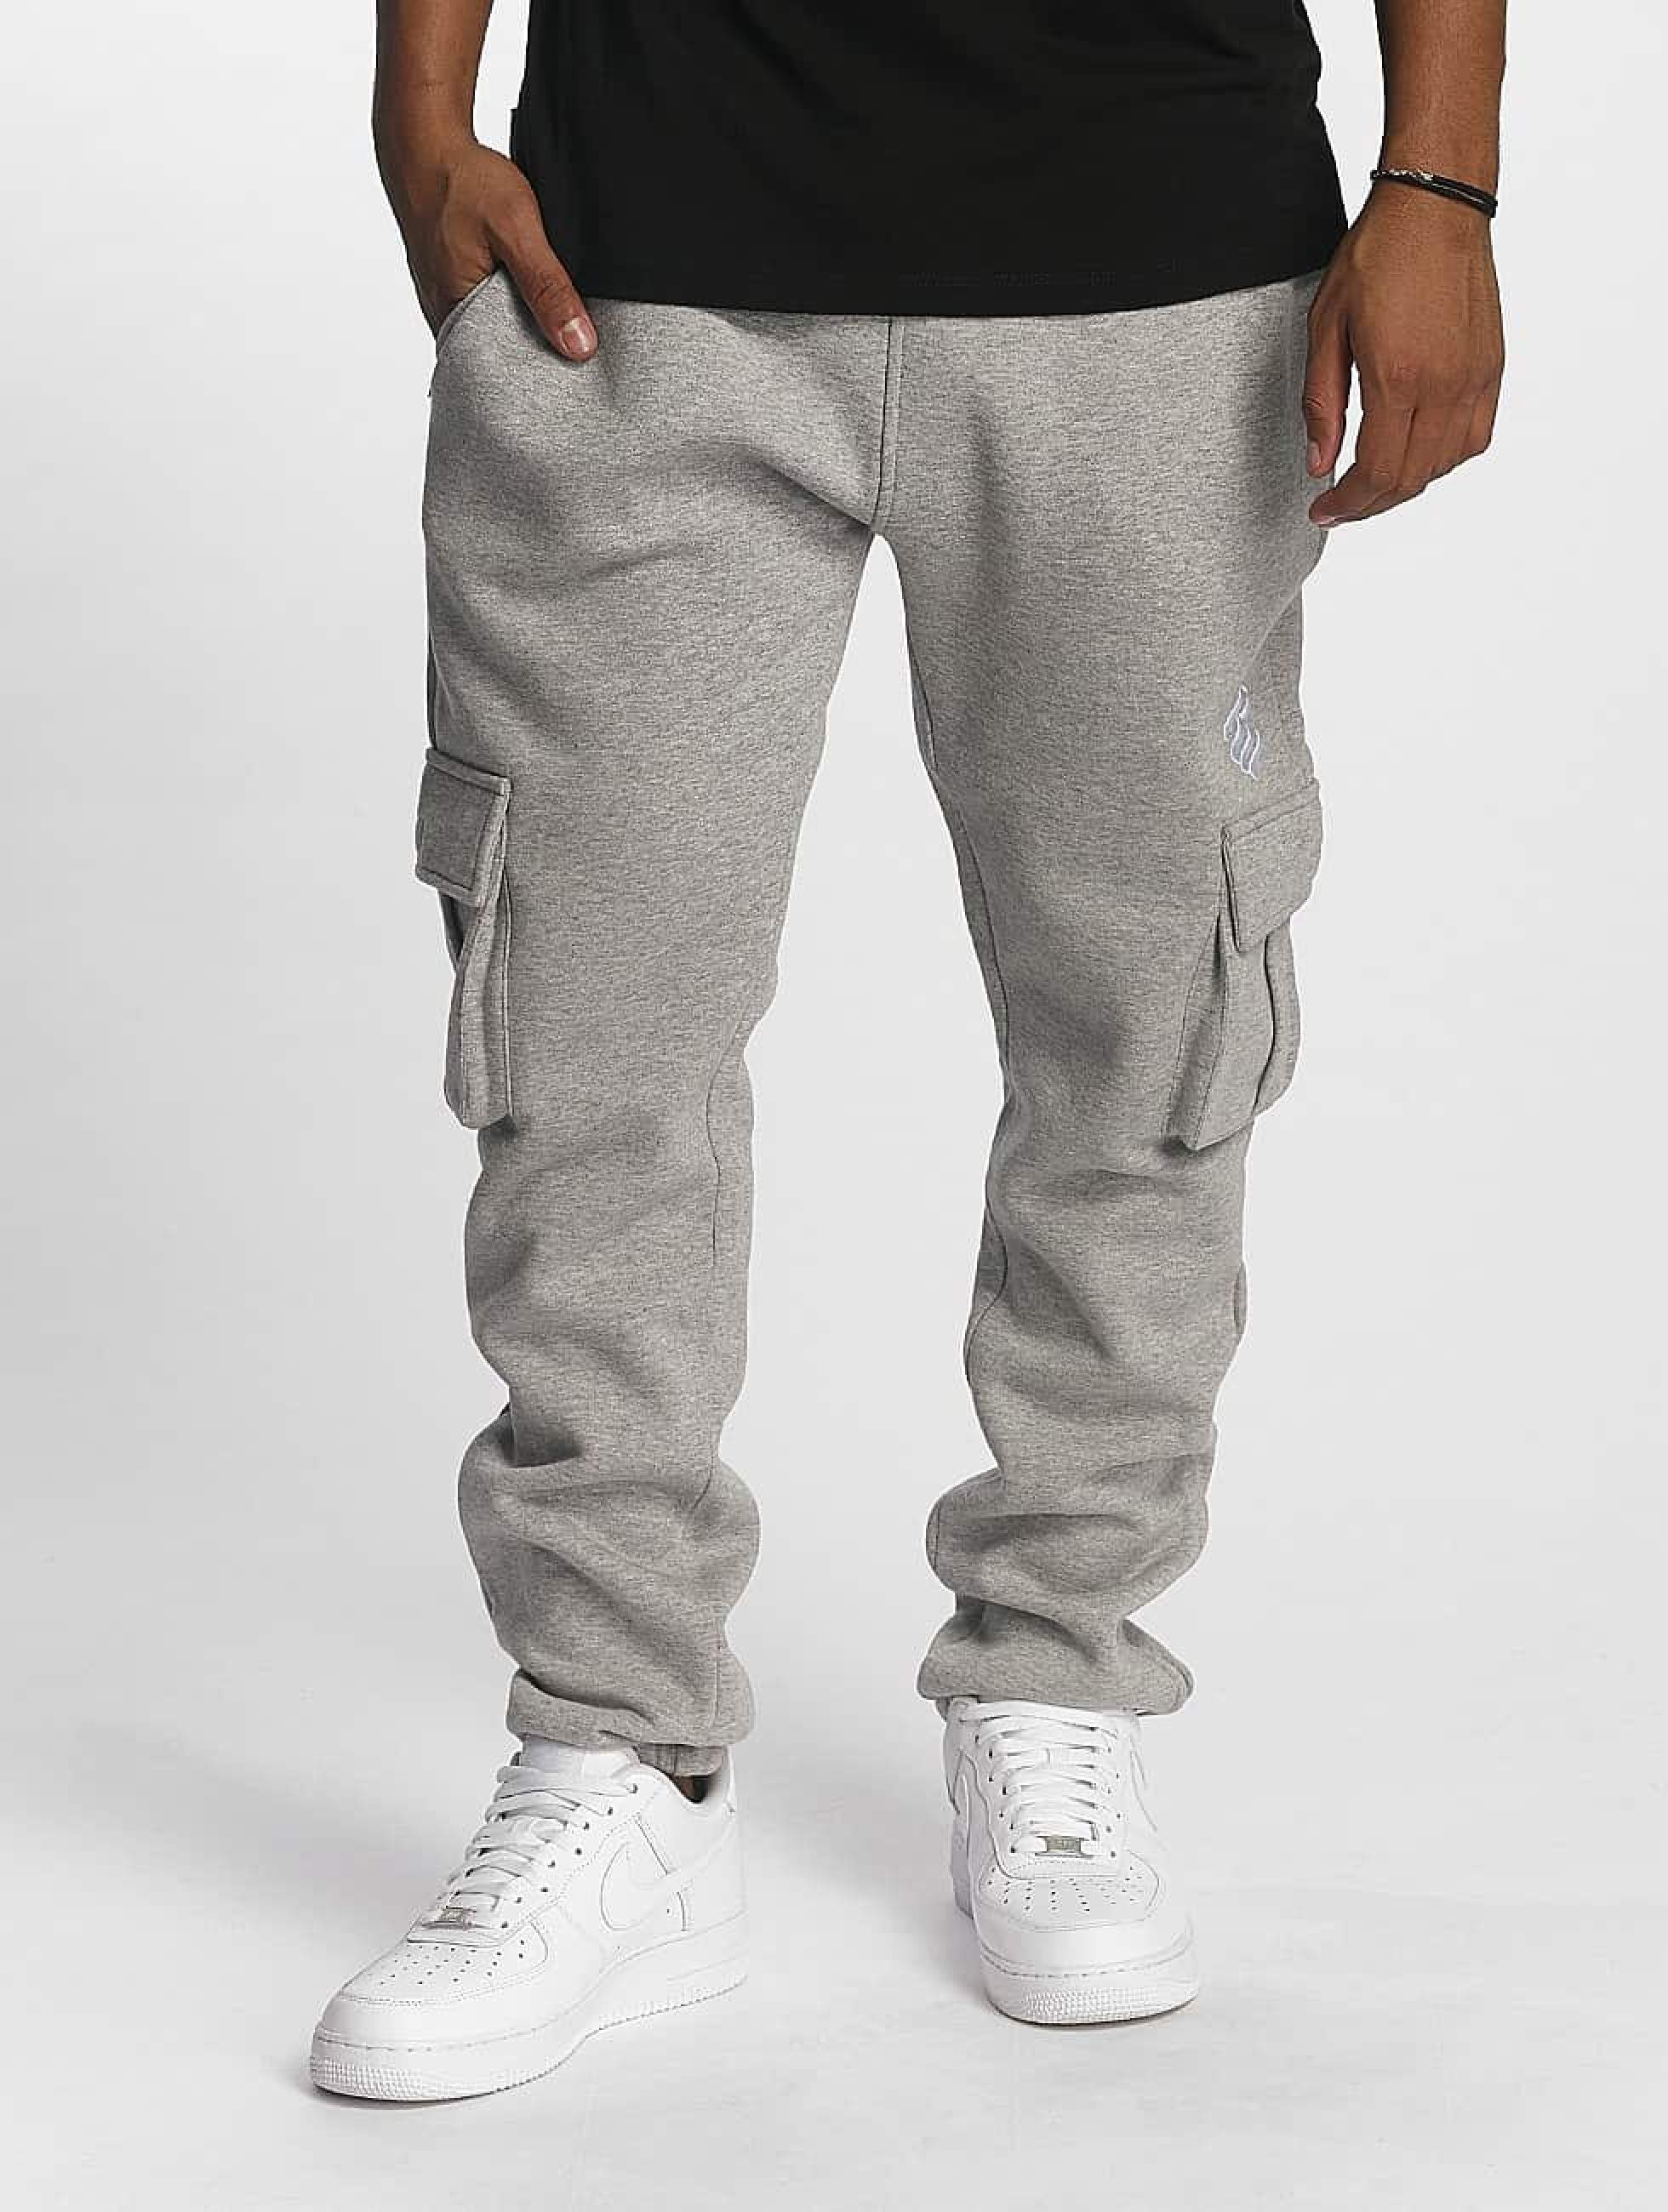 Rocawear / Sweat Pant Bags in grey 3XL